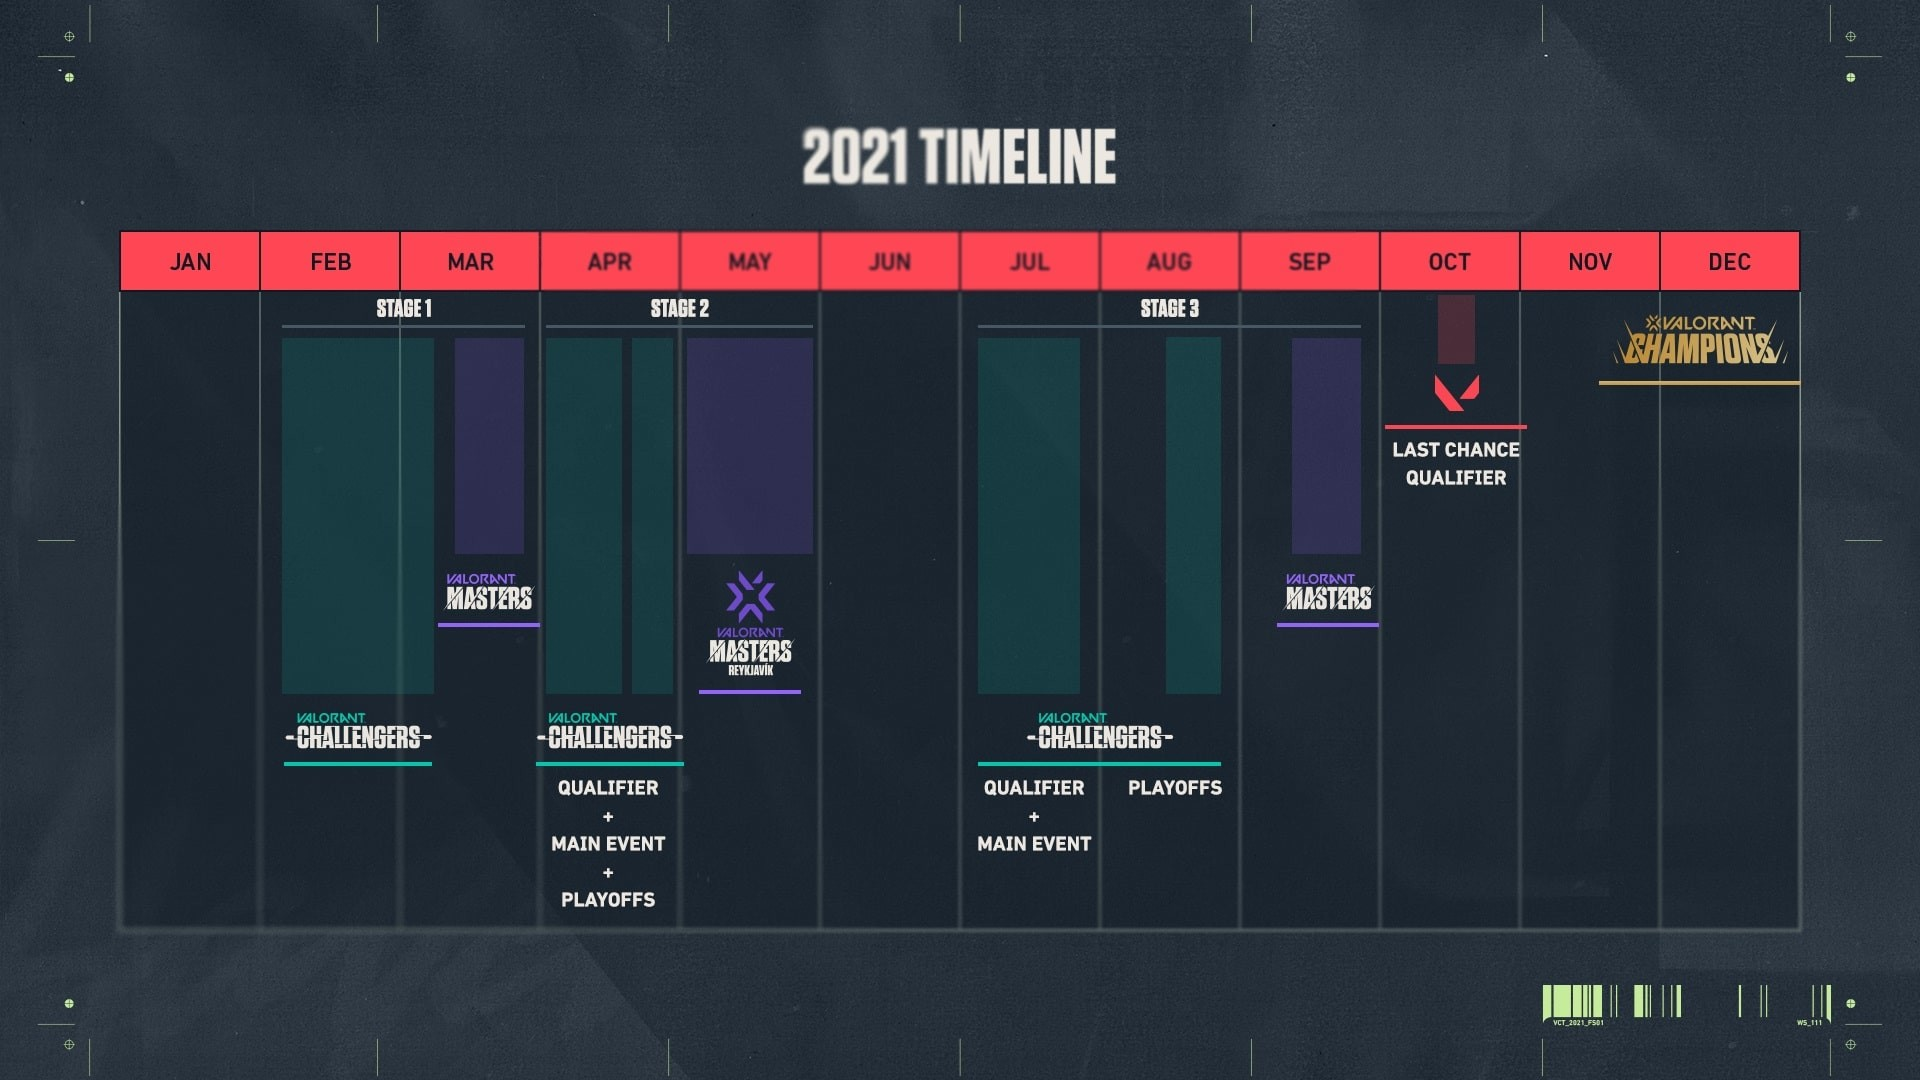 The new schedule of the VCT shows the course of the Challengers in detail.